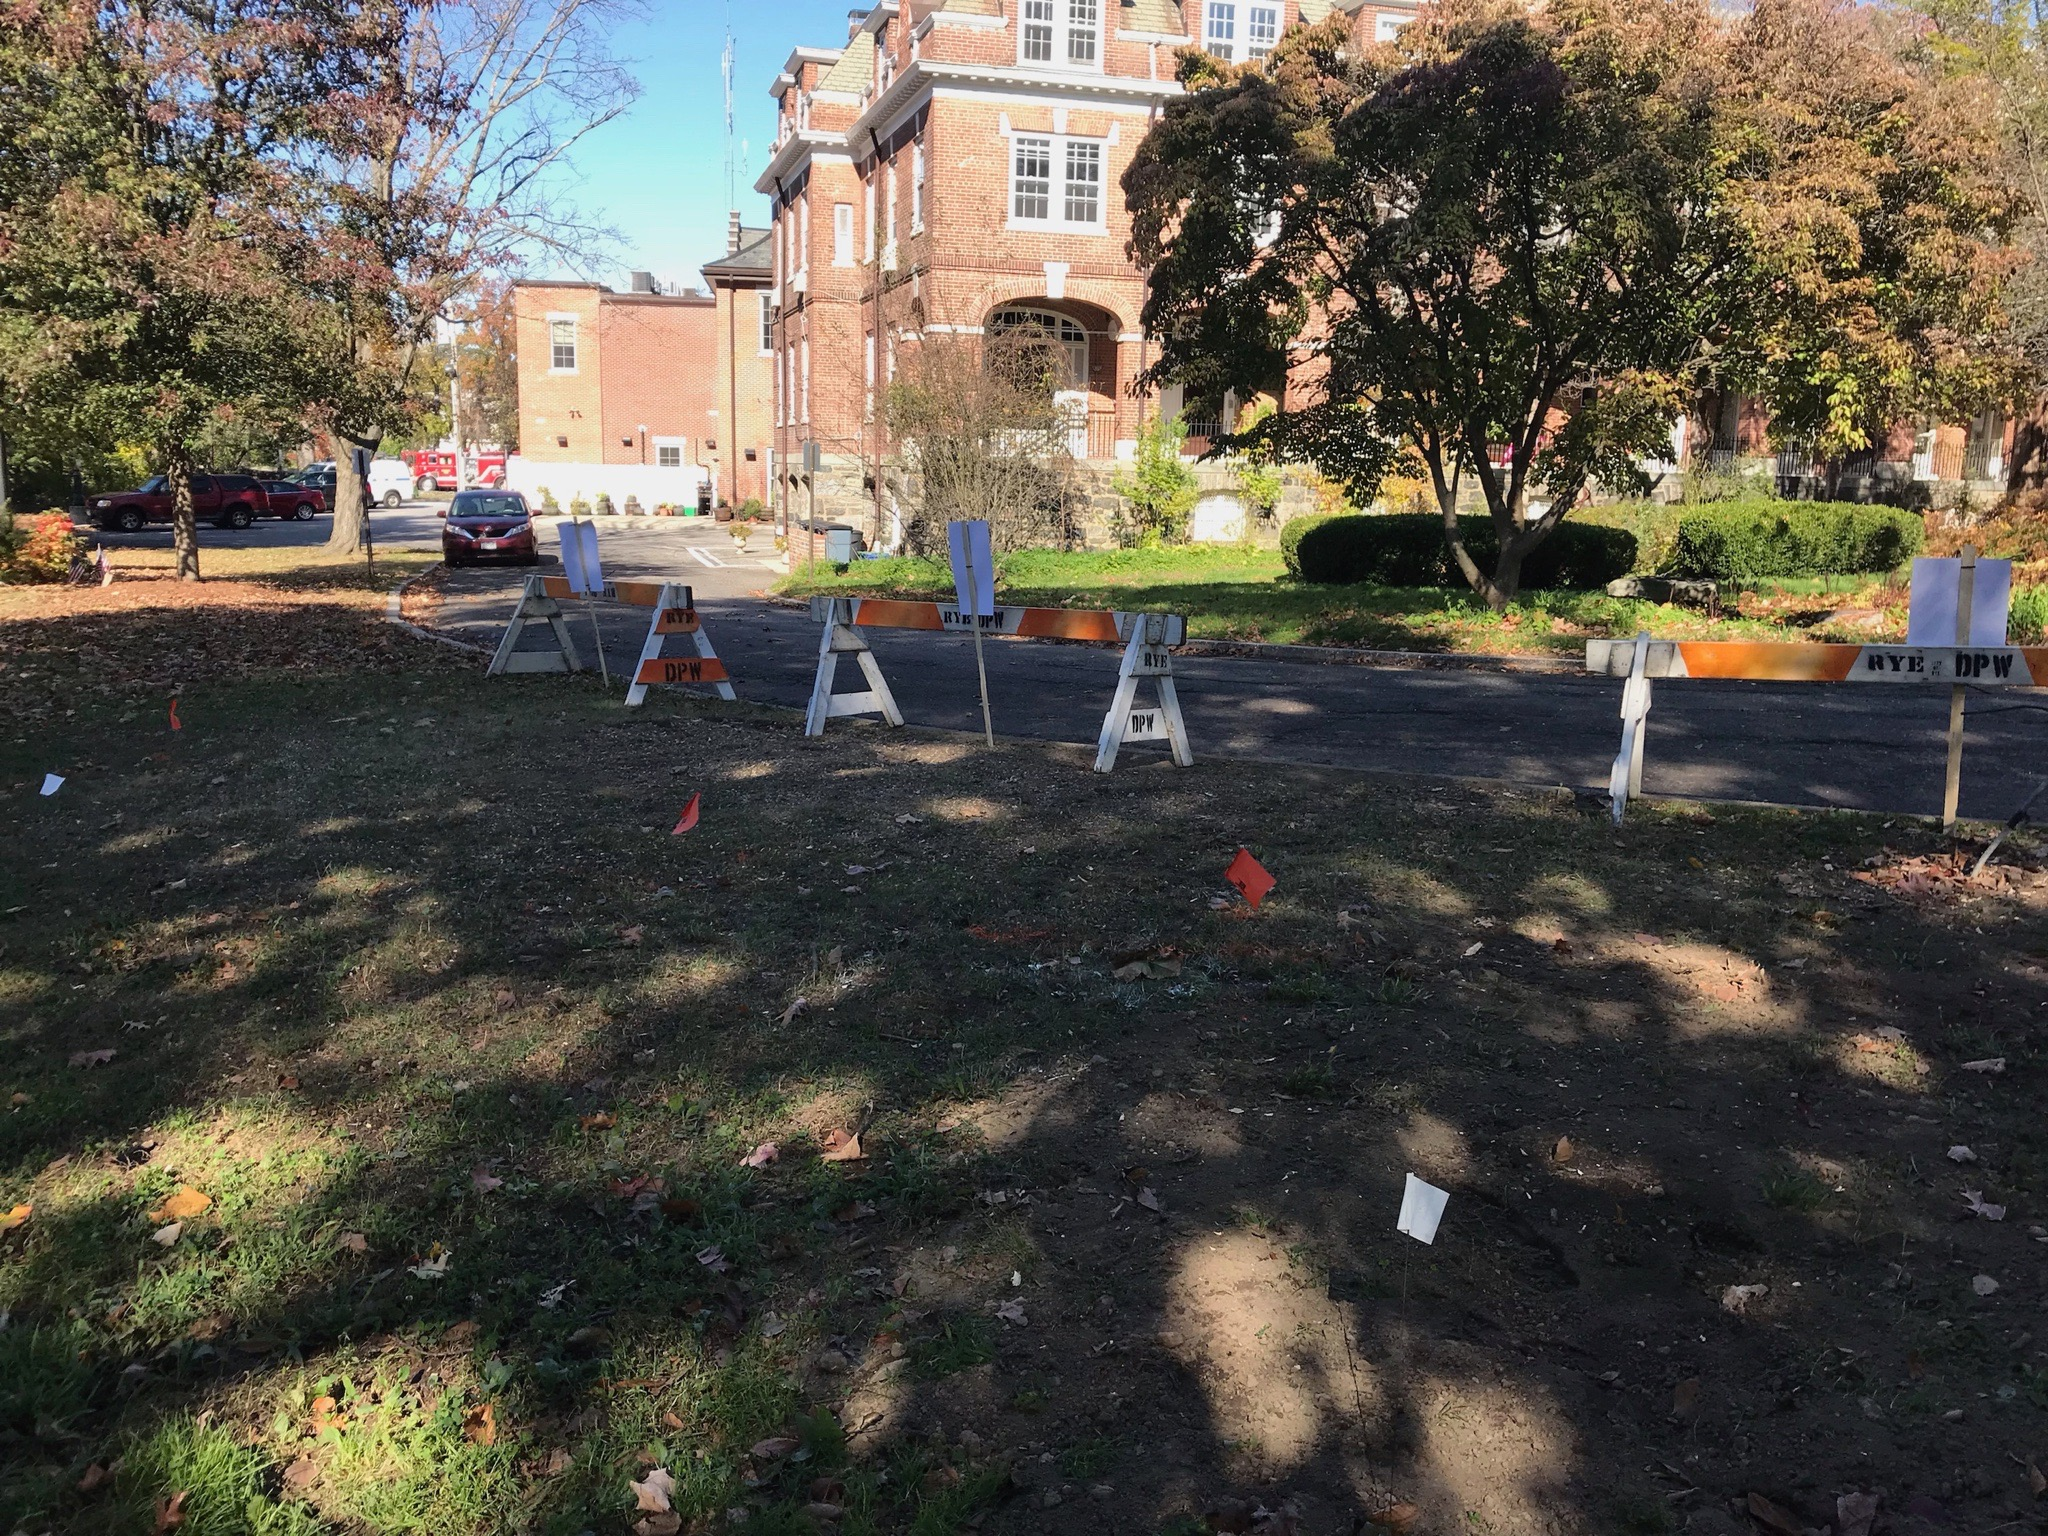 Village Green: White flags mark where Sugar Maple will be planted